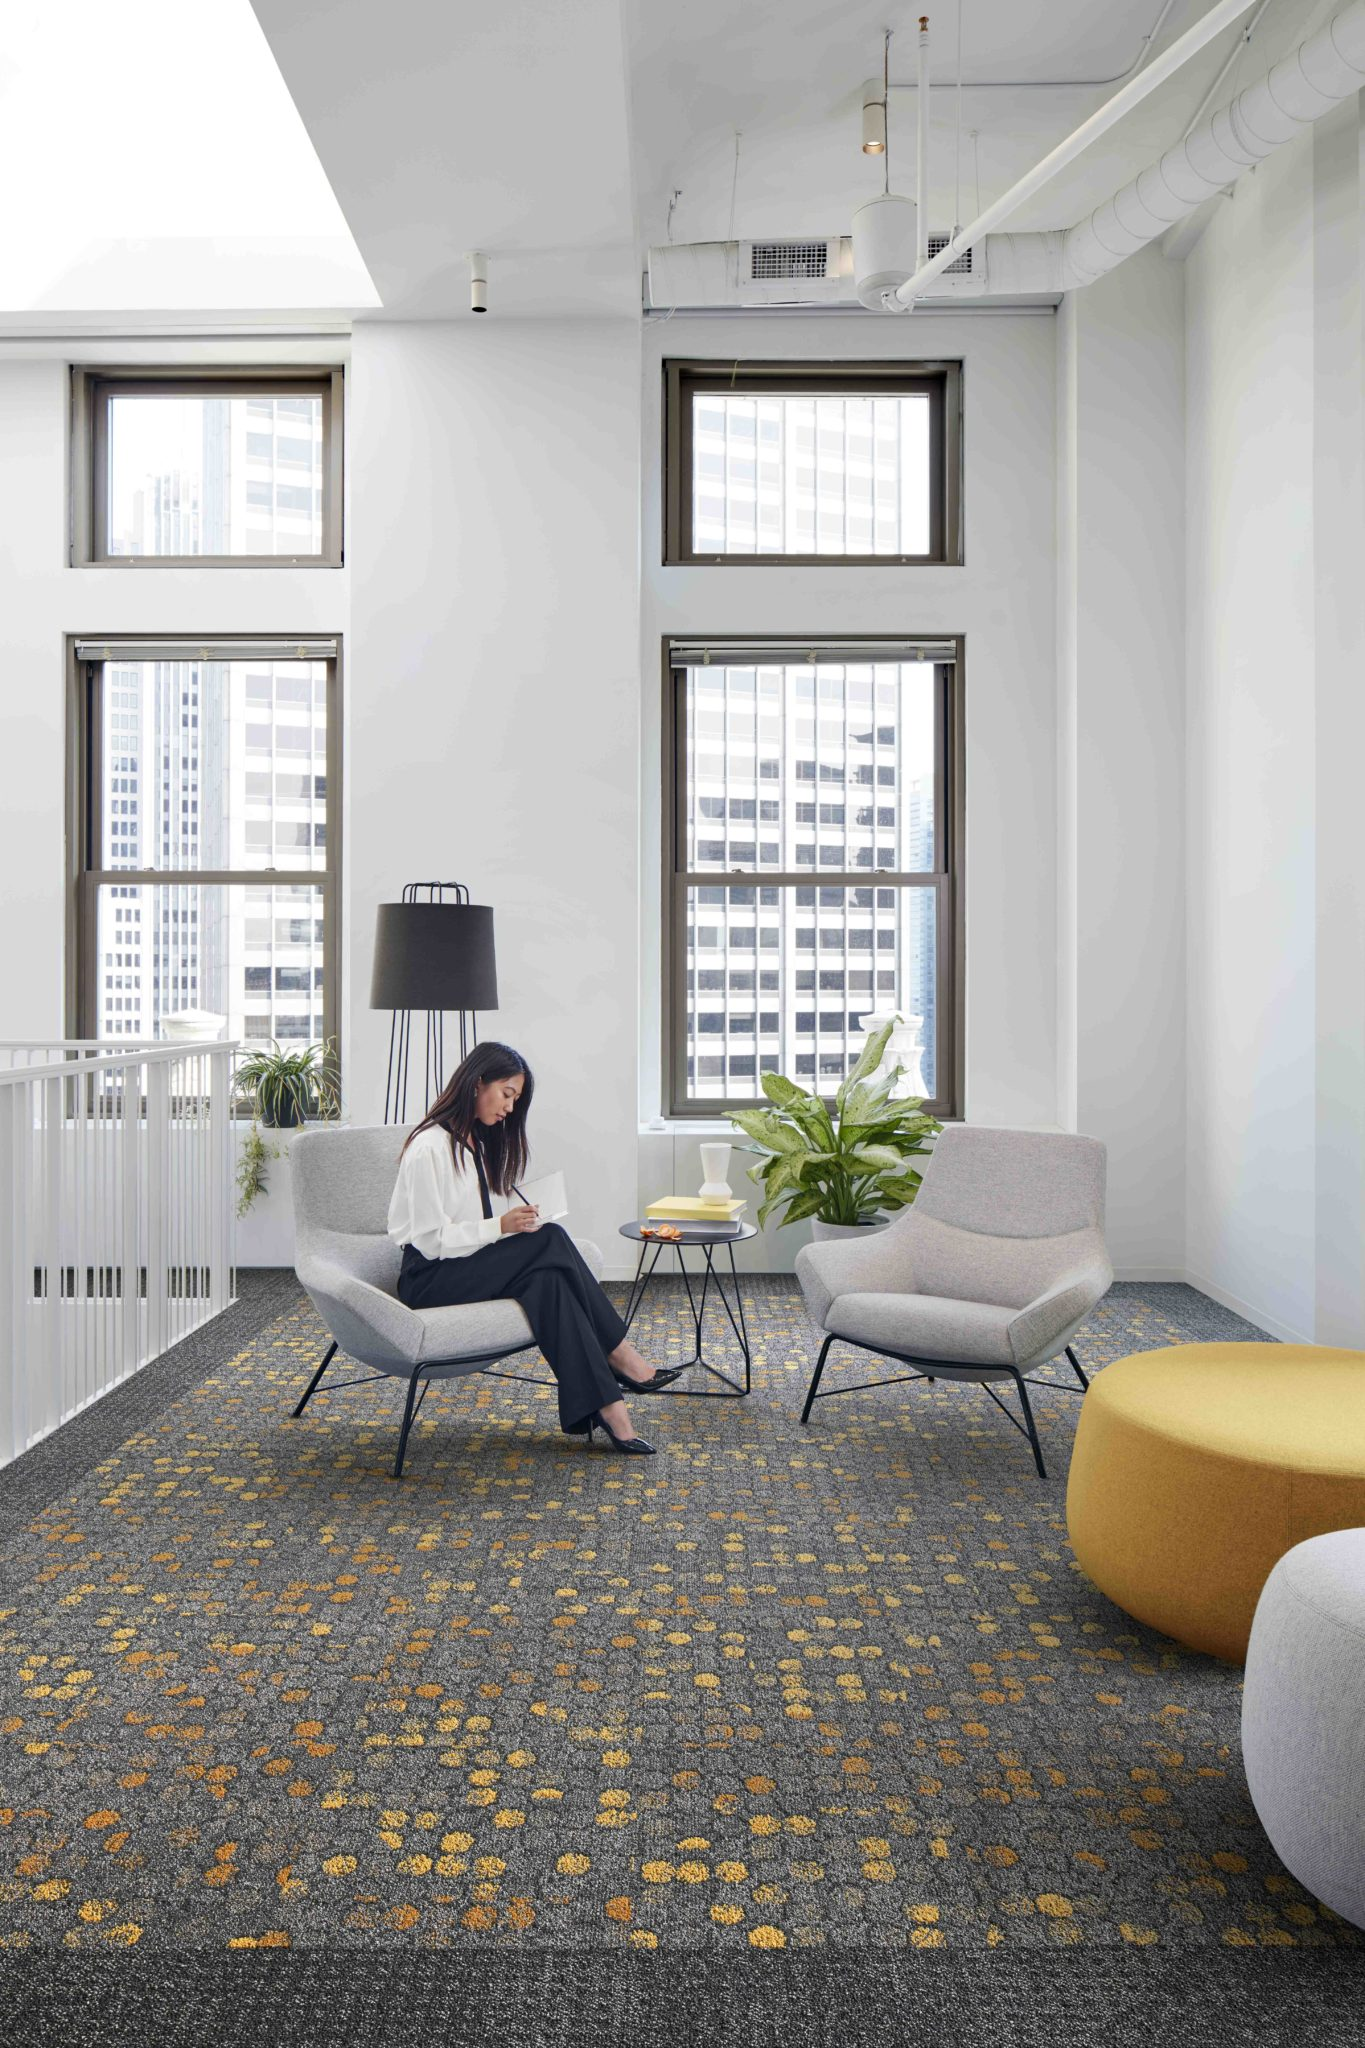 STREETS OF NEW YORK AND LONDON INSPIRE NEW CARPET TILE DESIGNS